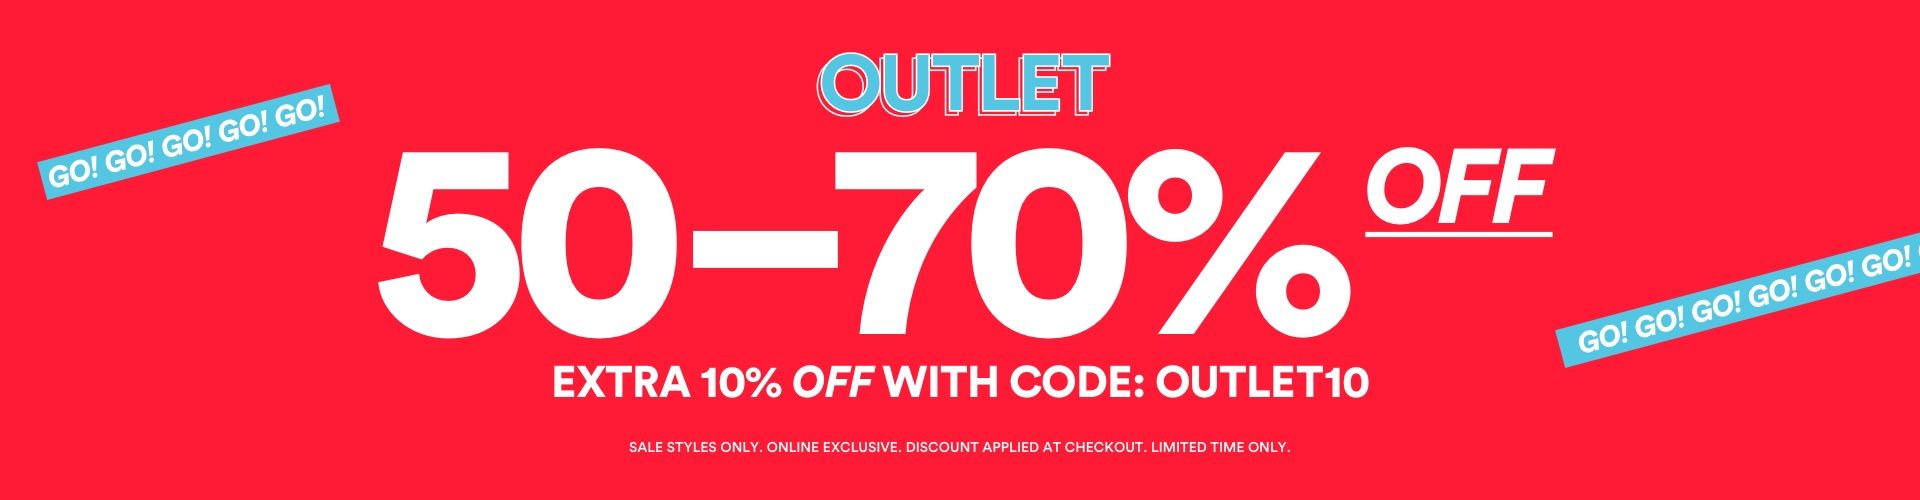 Outlet. 50 - 70% Off. Extra 10% Off with Code: OUTLET10